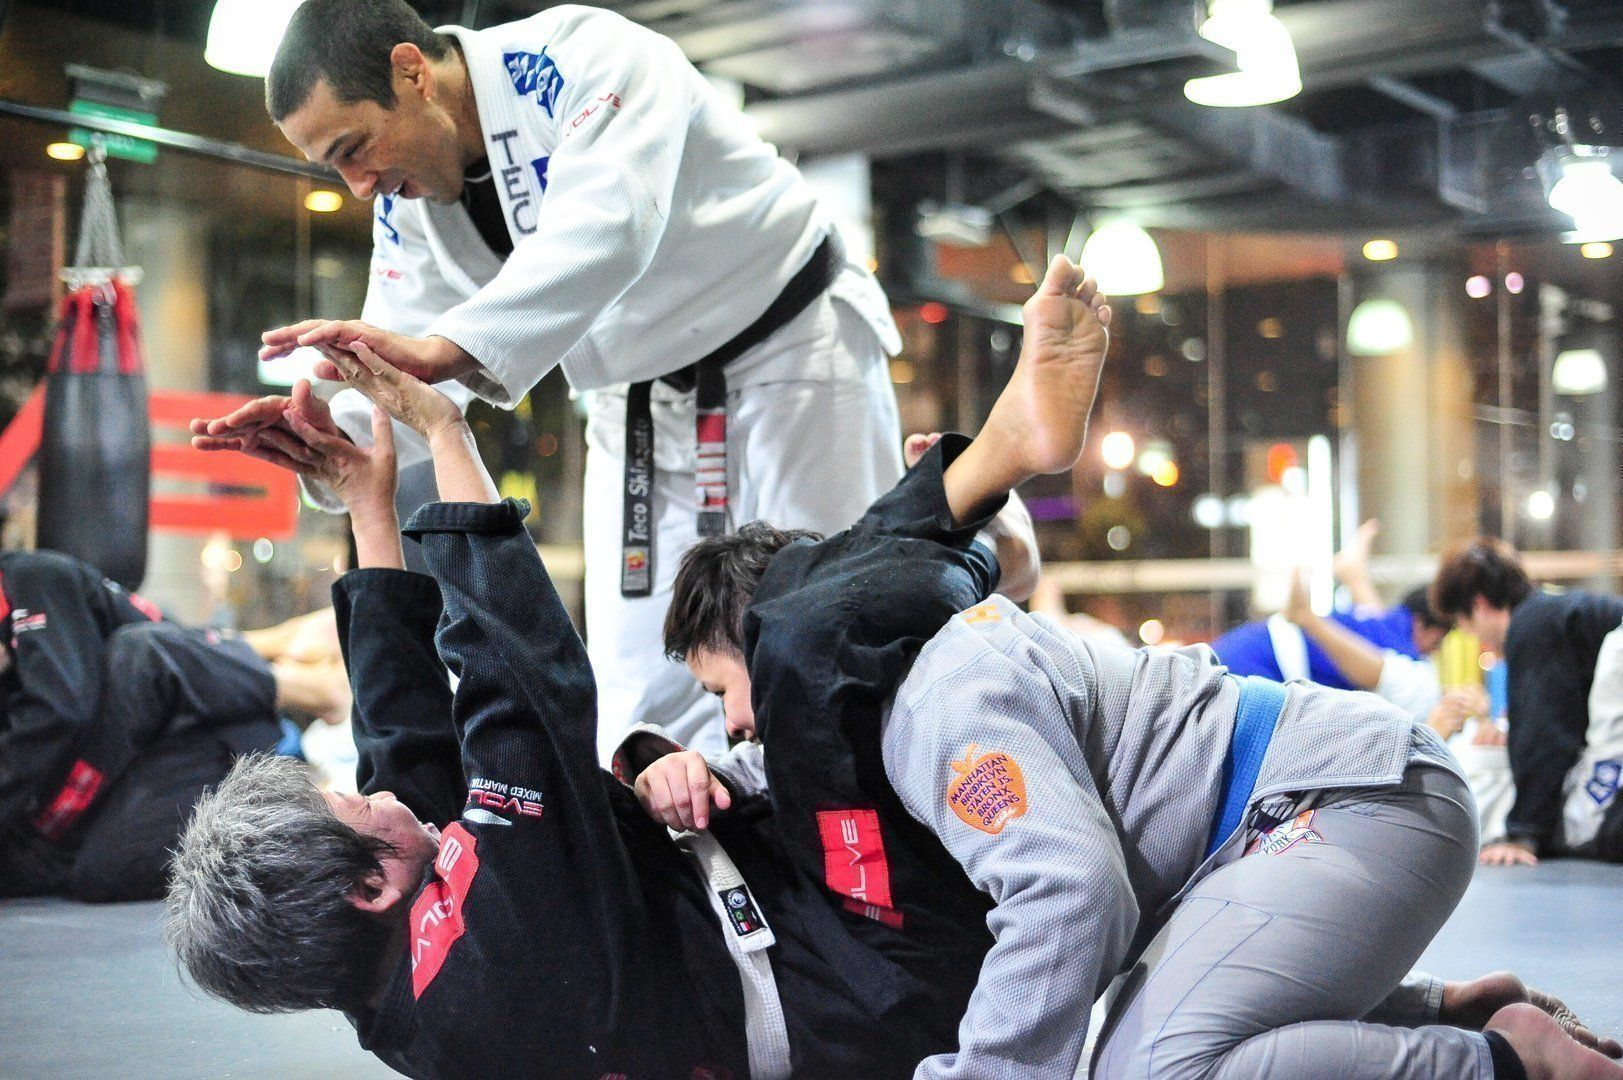 5 Ways Martial Arts Cultivates Peace - Evolve Daily